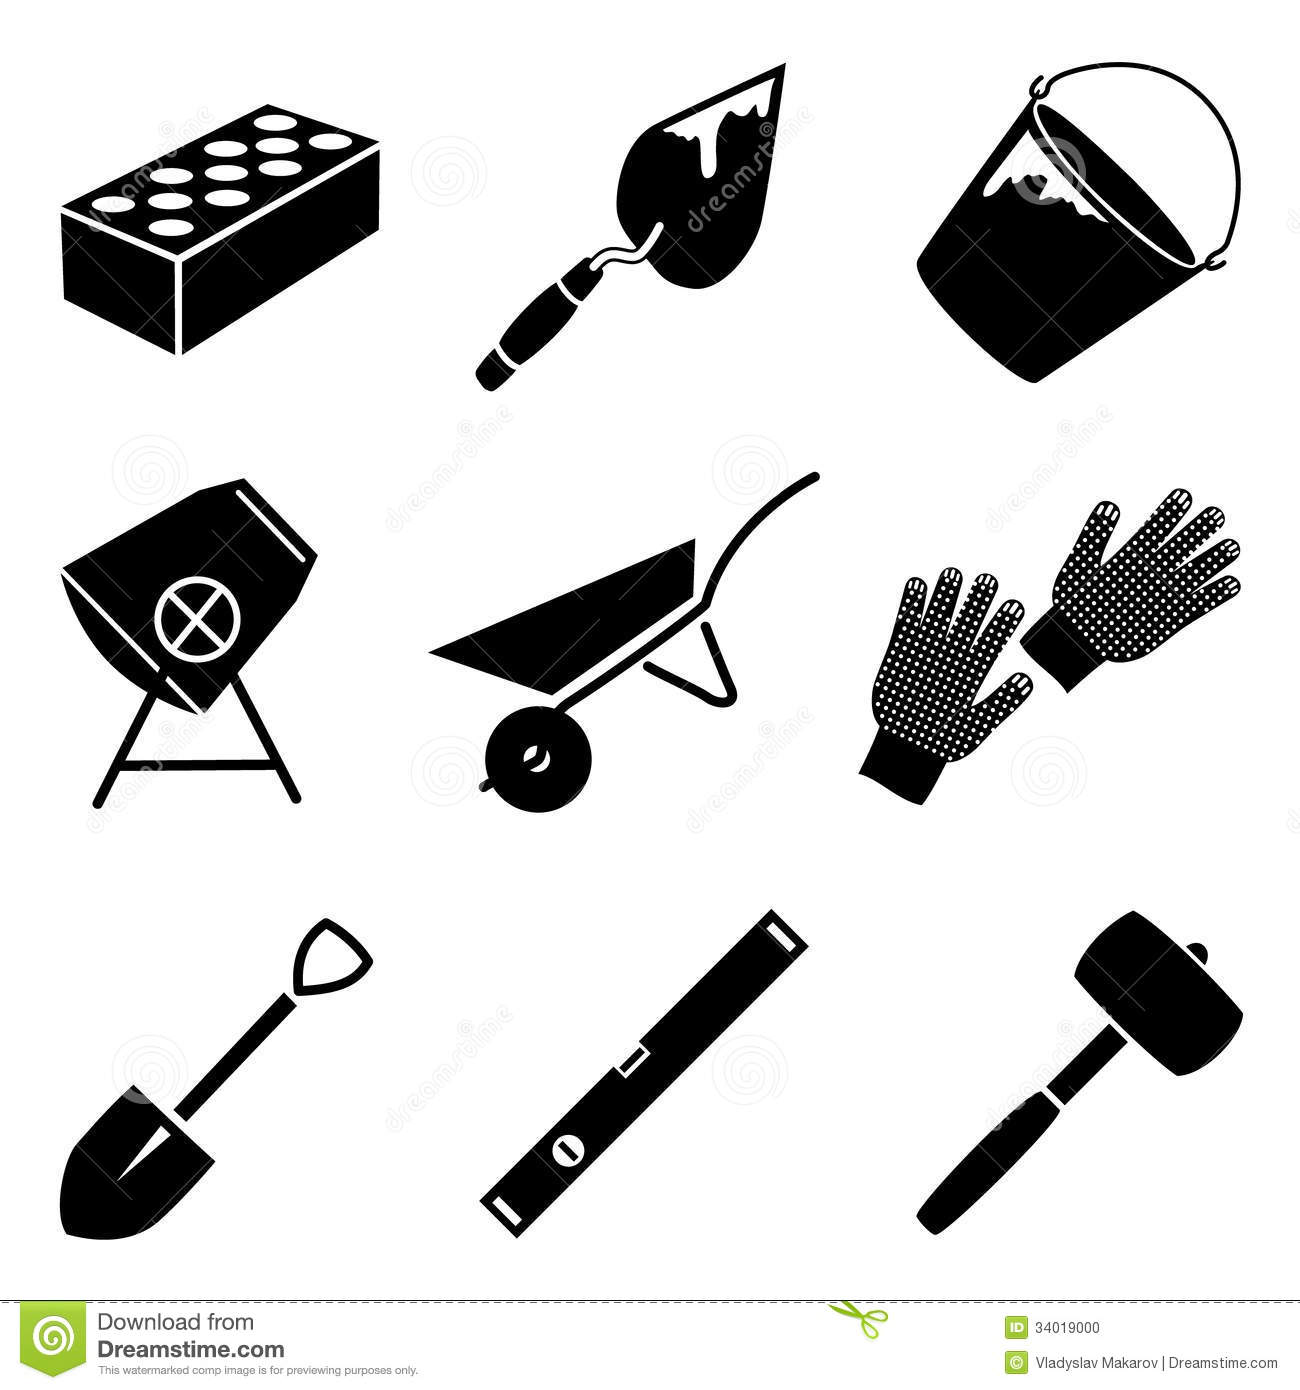 11 Construction Tools Vector Images - Construction Tools ...